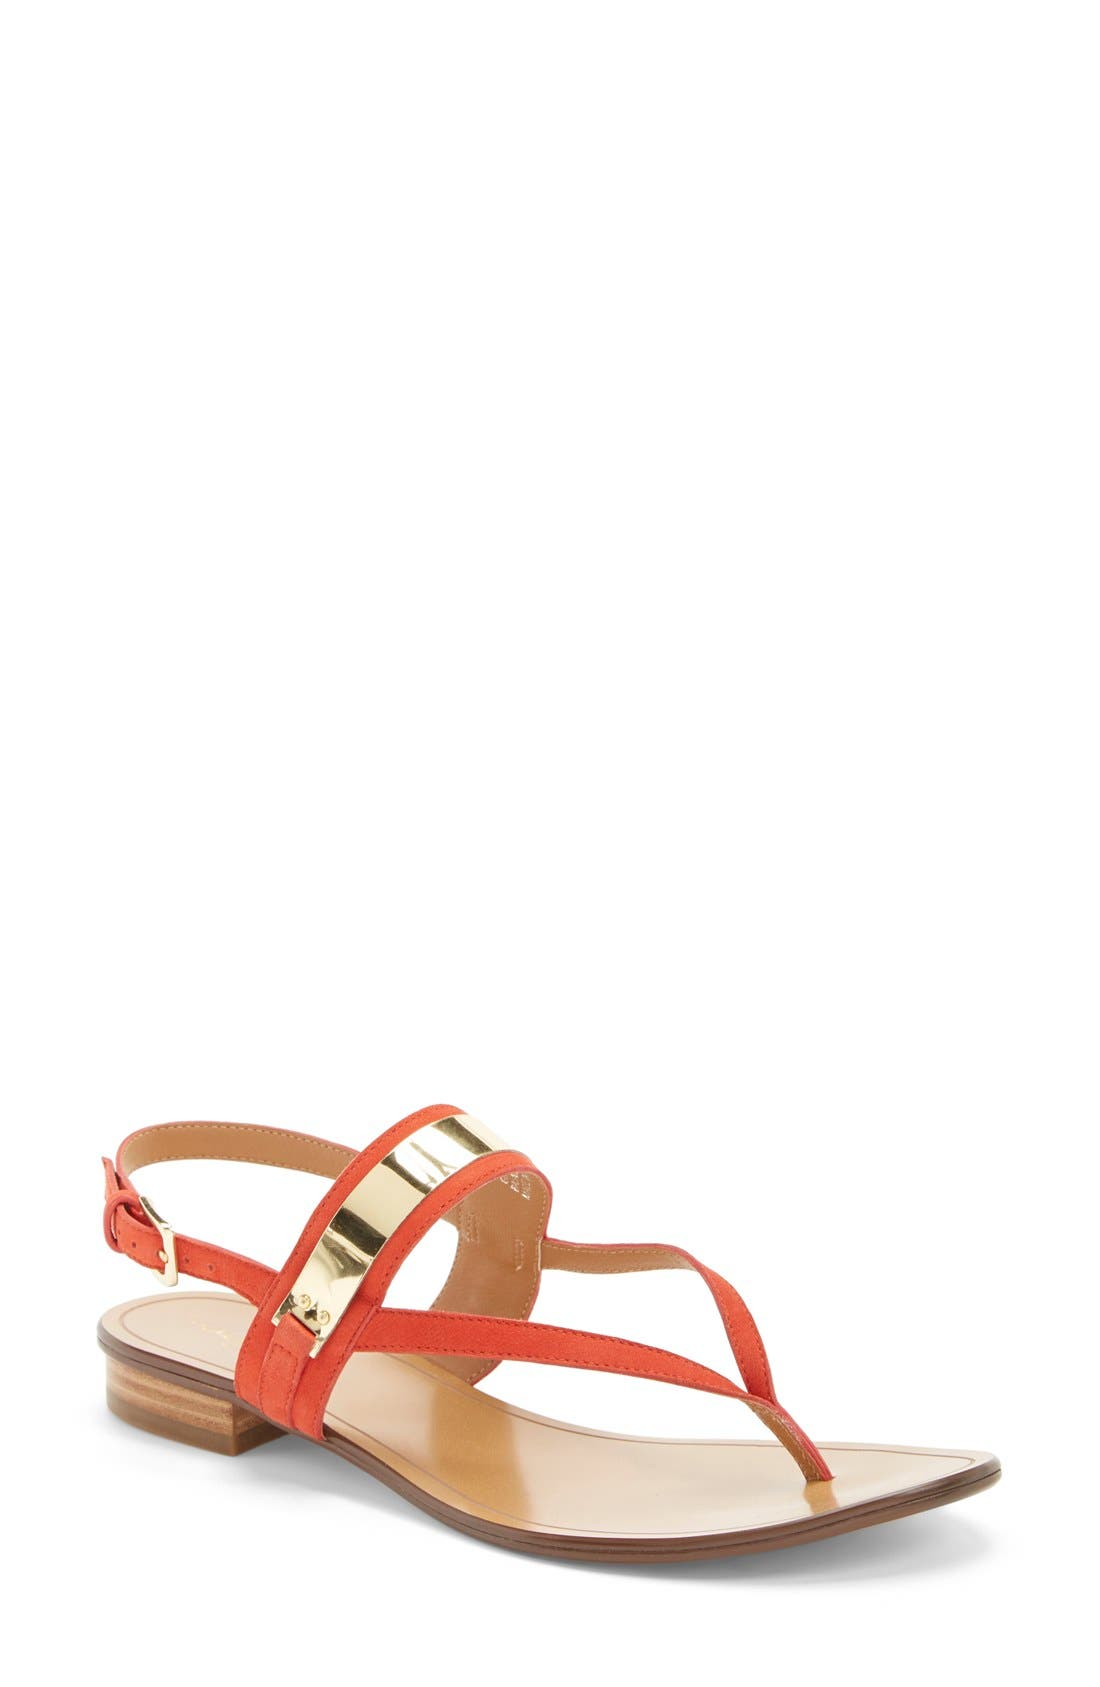 Alternate Image 1 Selected - Halogen® 'Rita' Thong Sandal (Women)